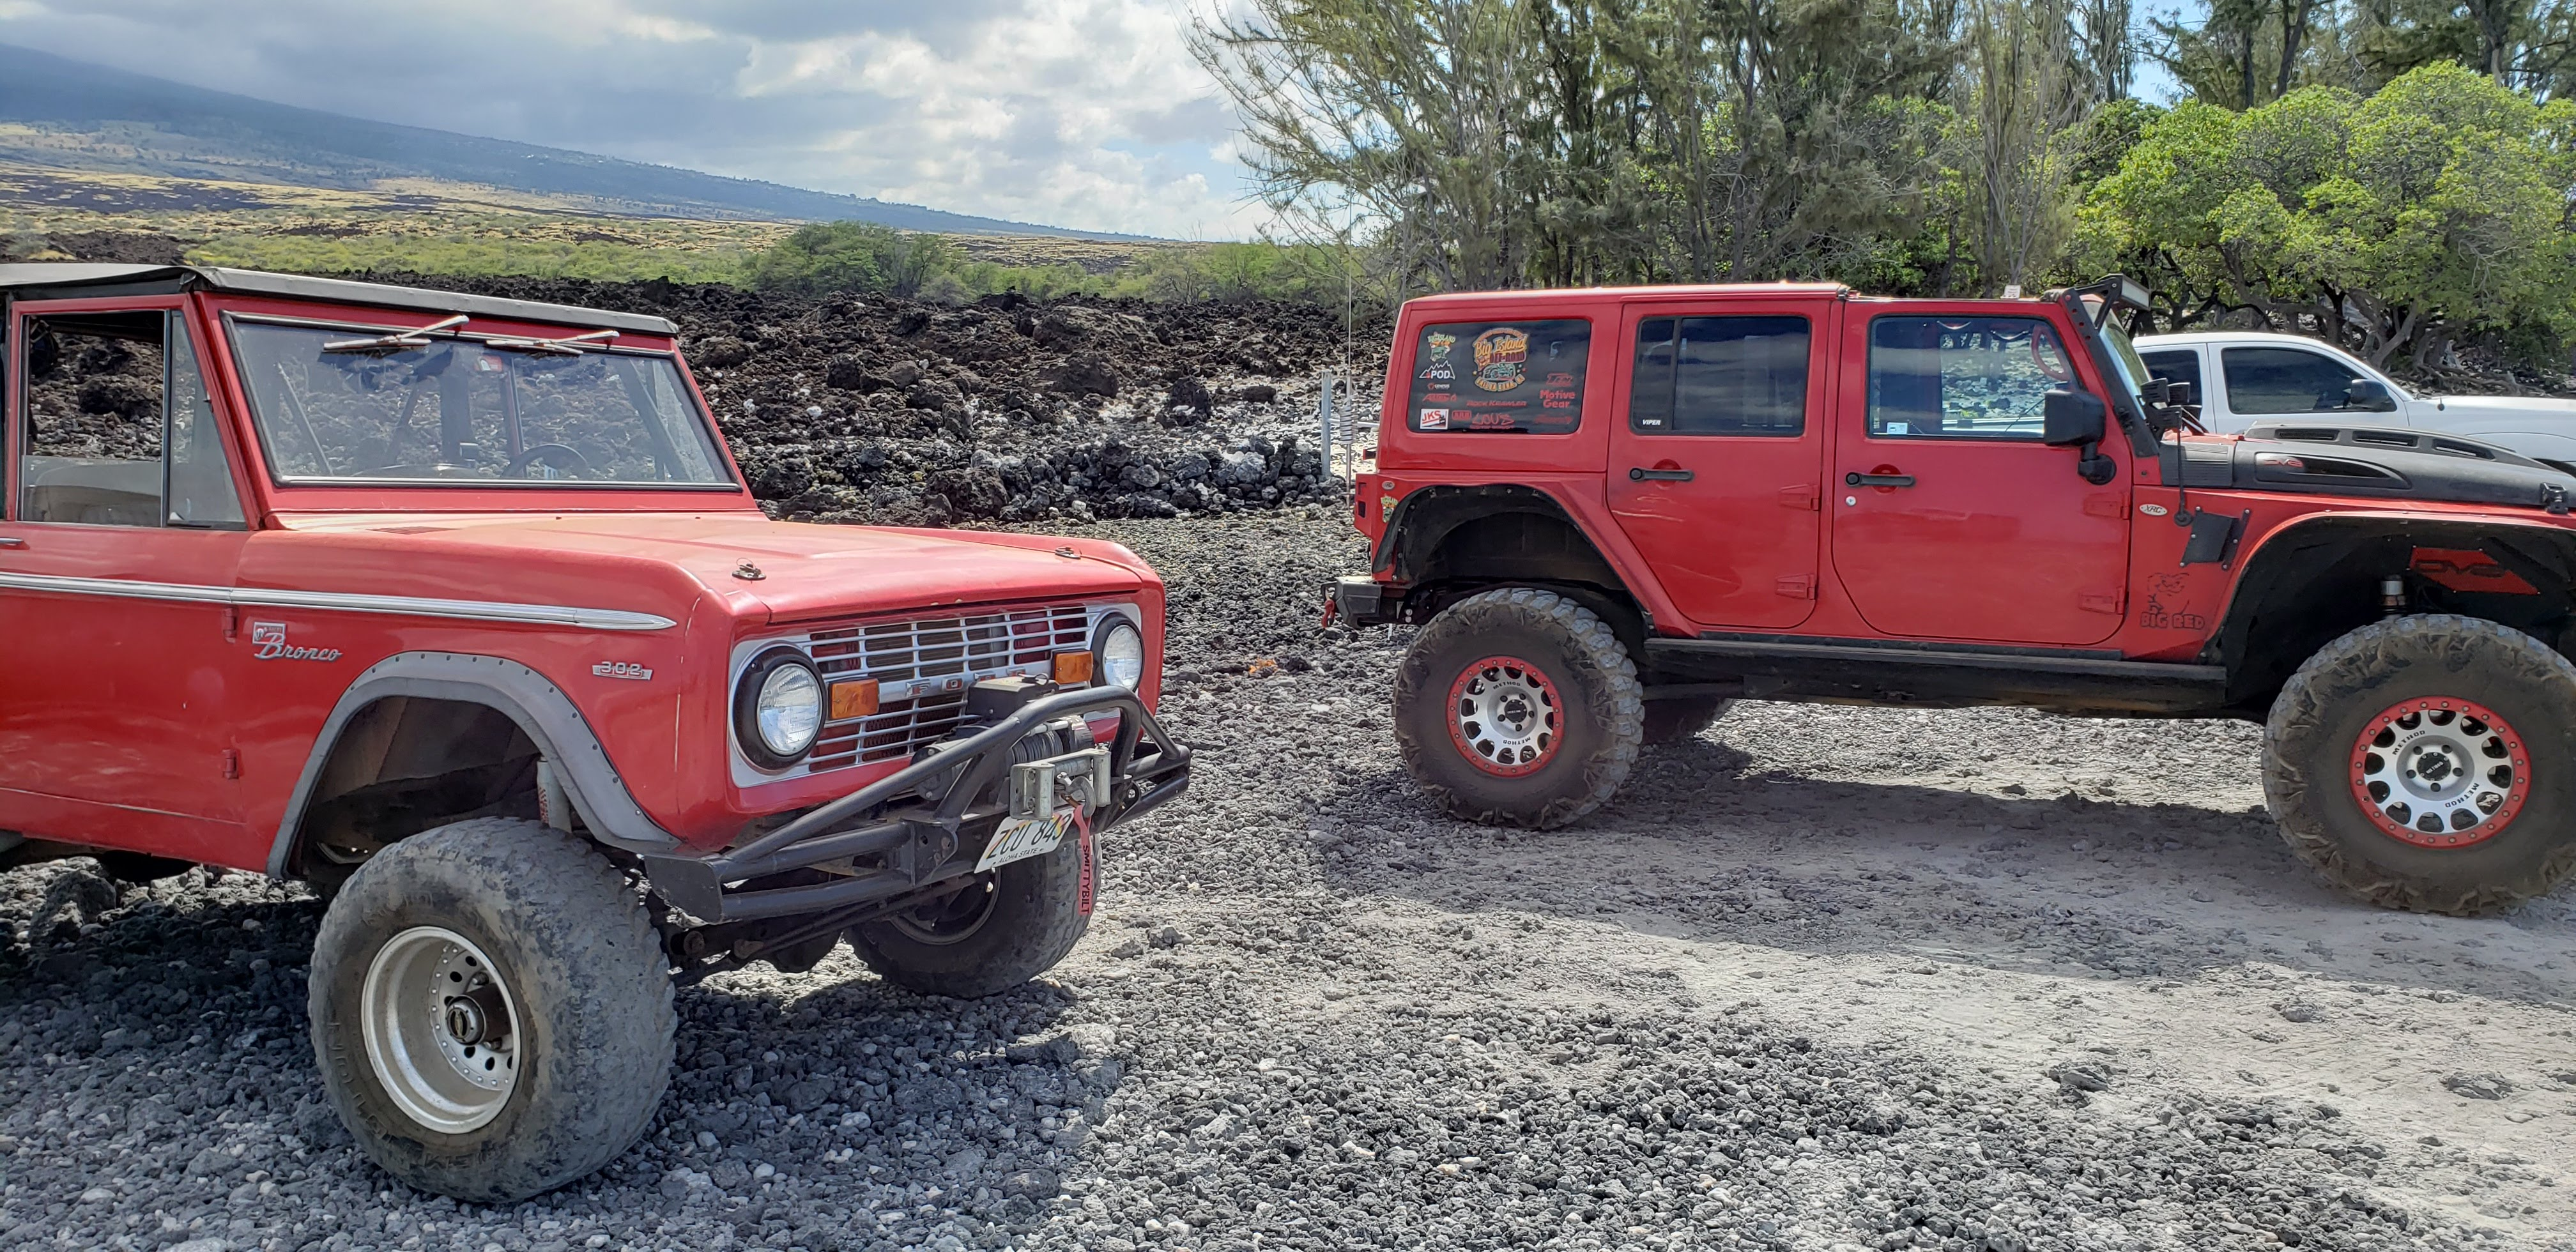 hawaii-off-roading-2019-31